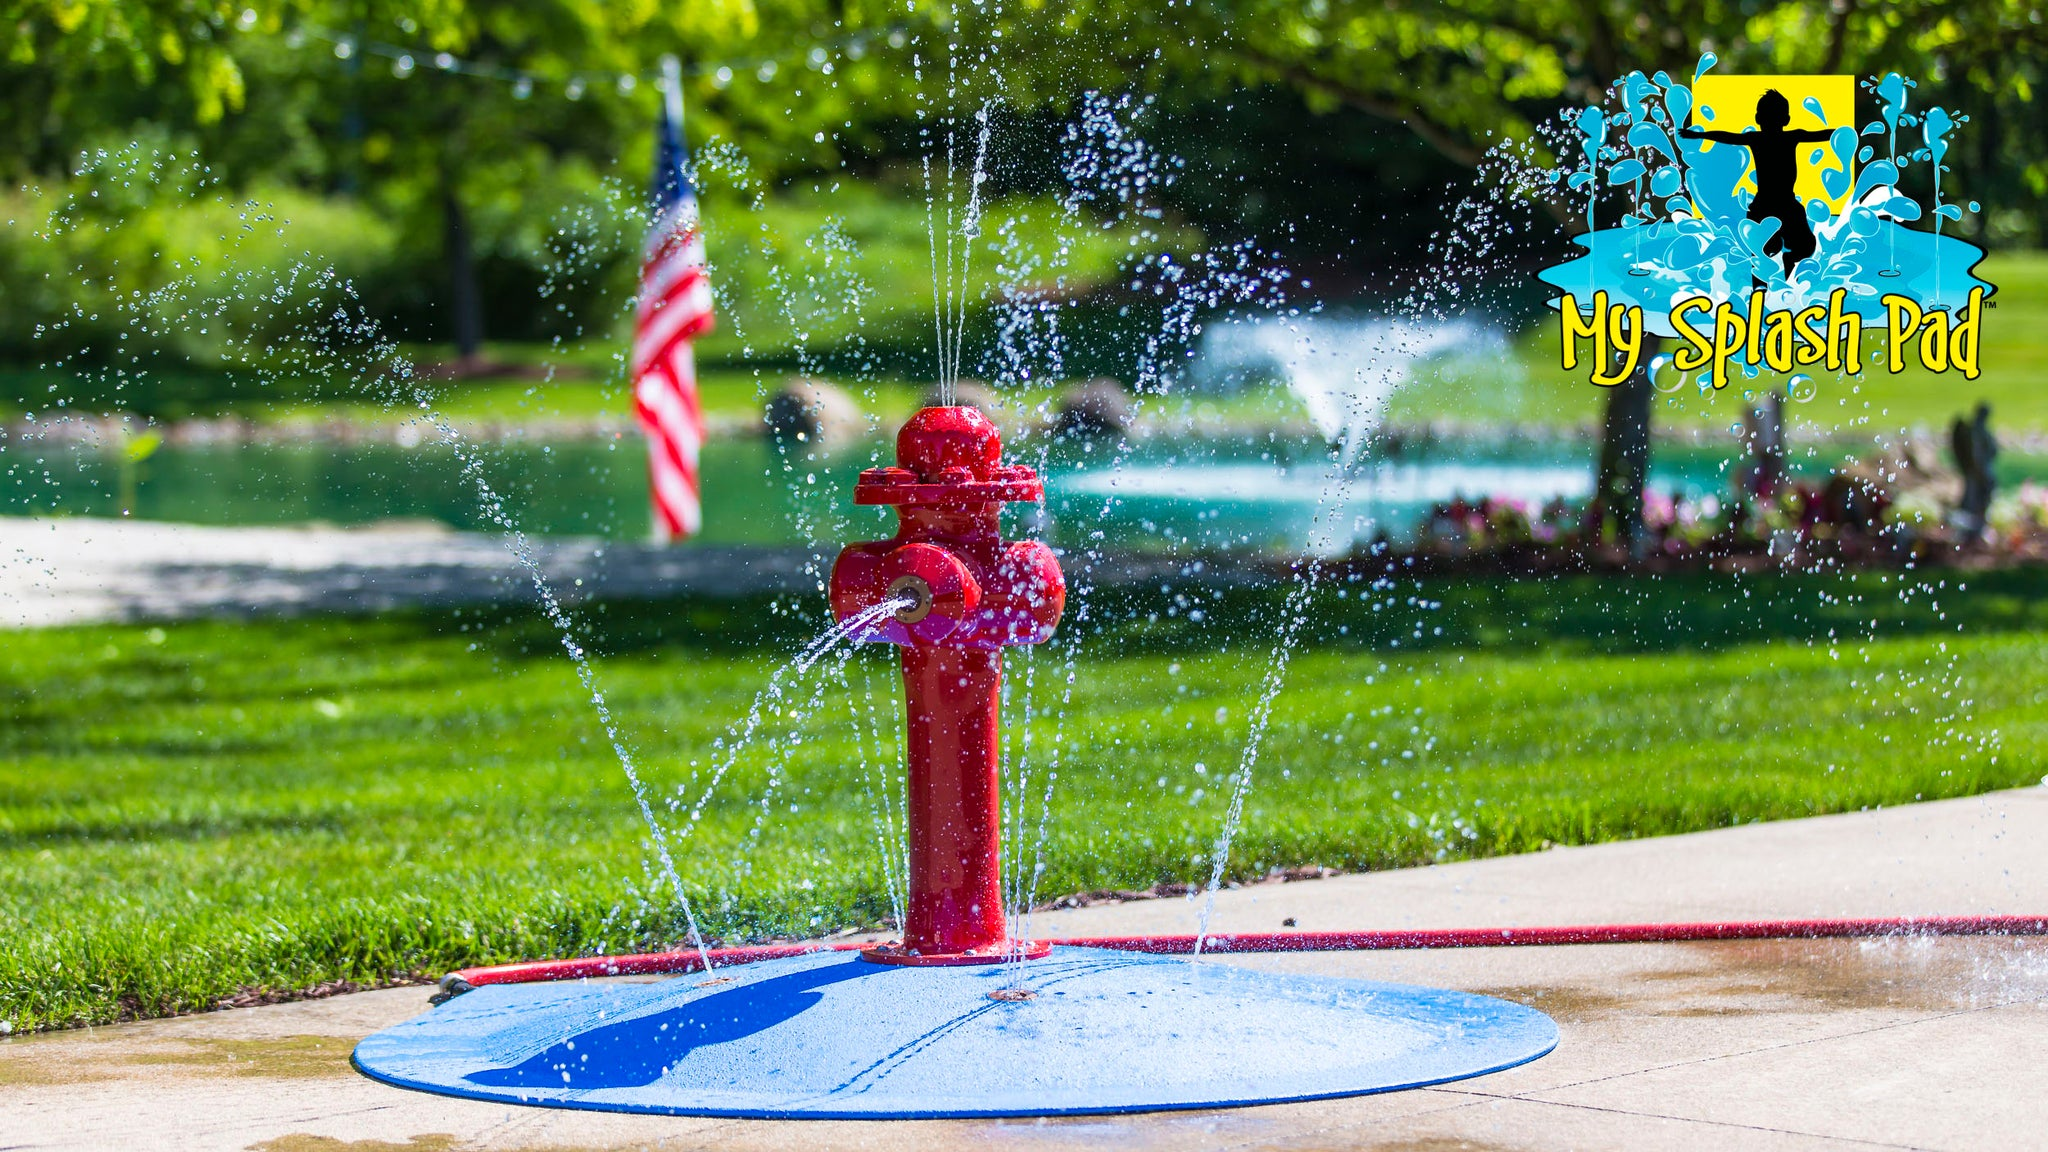 My Splash Pad's Portable Splash Pad Water Play Features